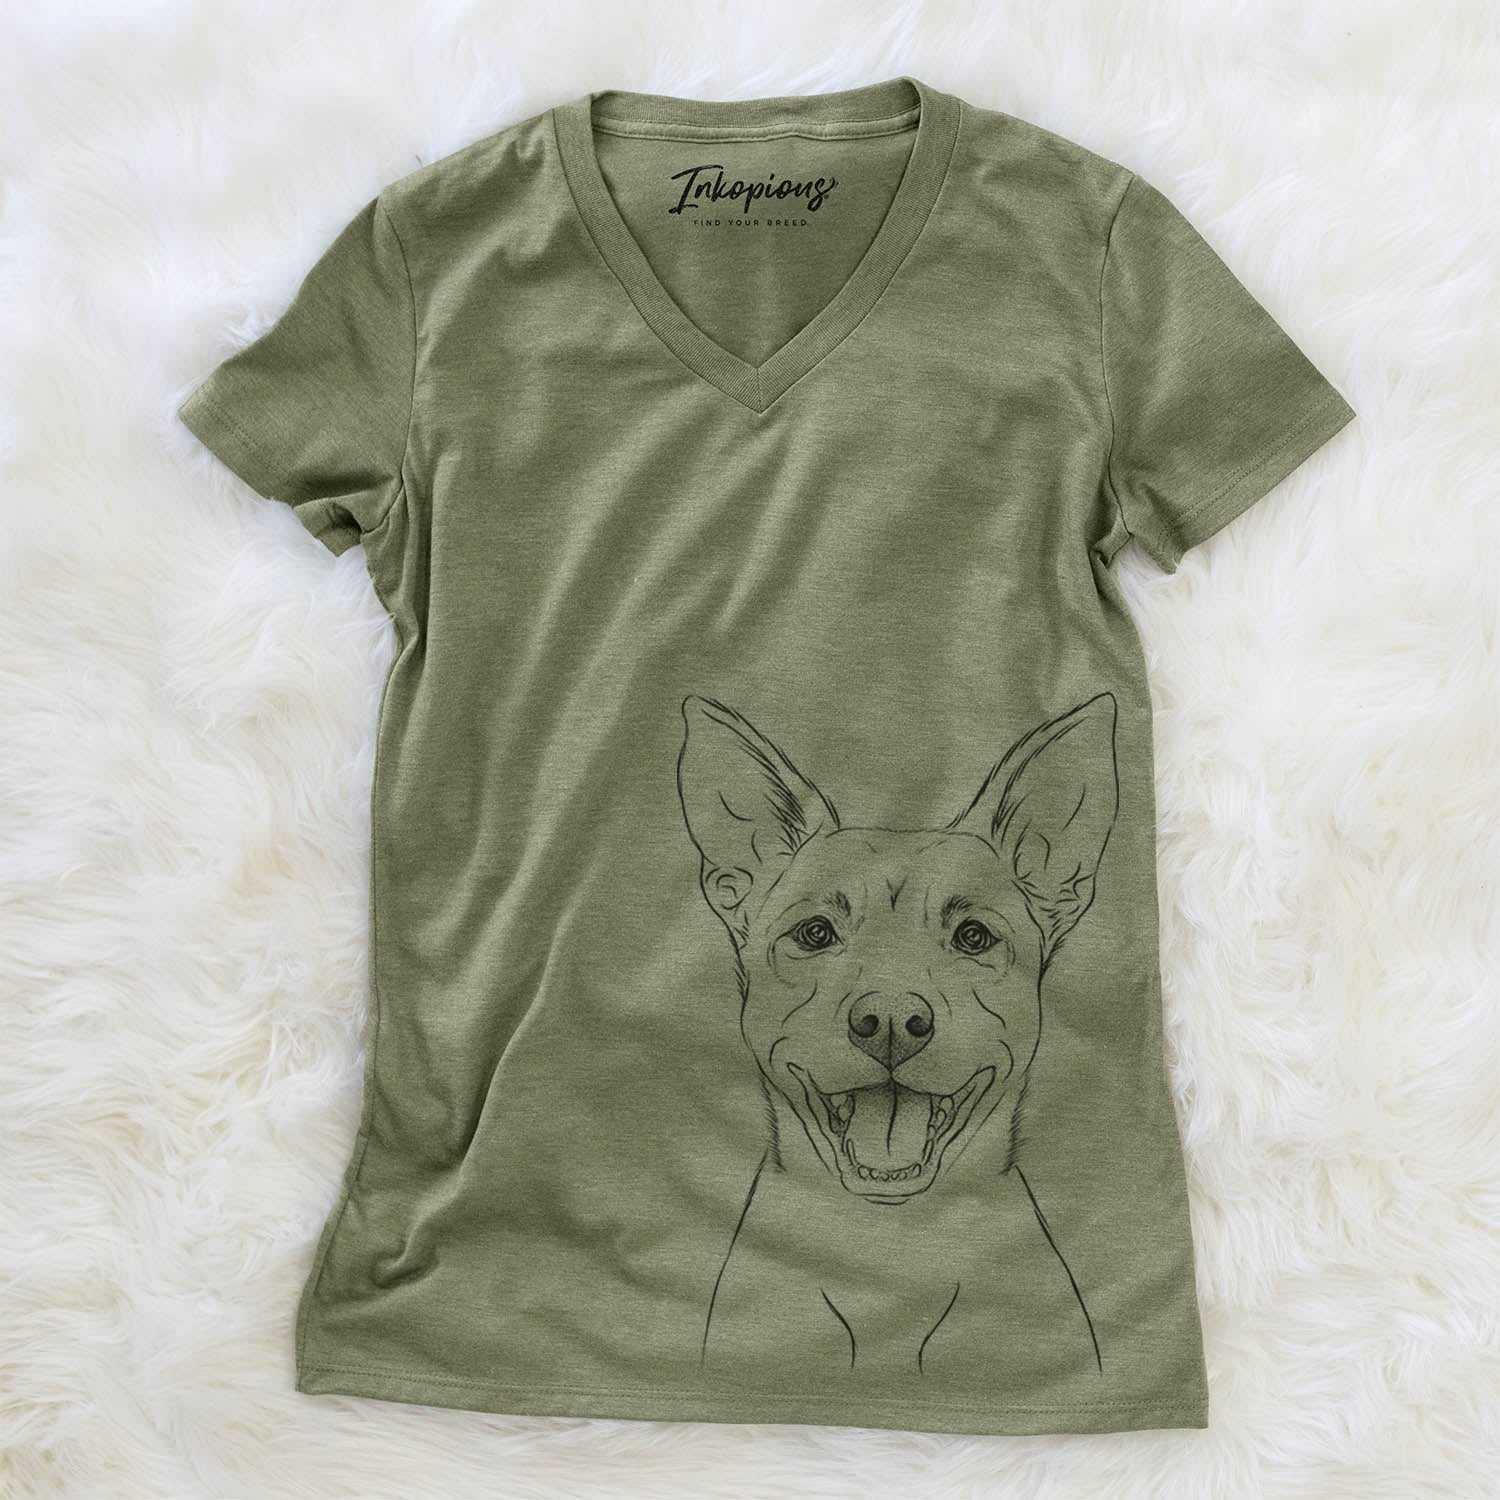 Orange the Carolina Dog - Women's Modern Fit V-neck Shirt